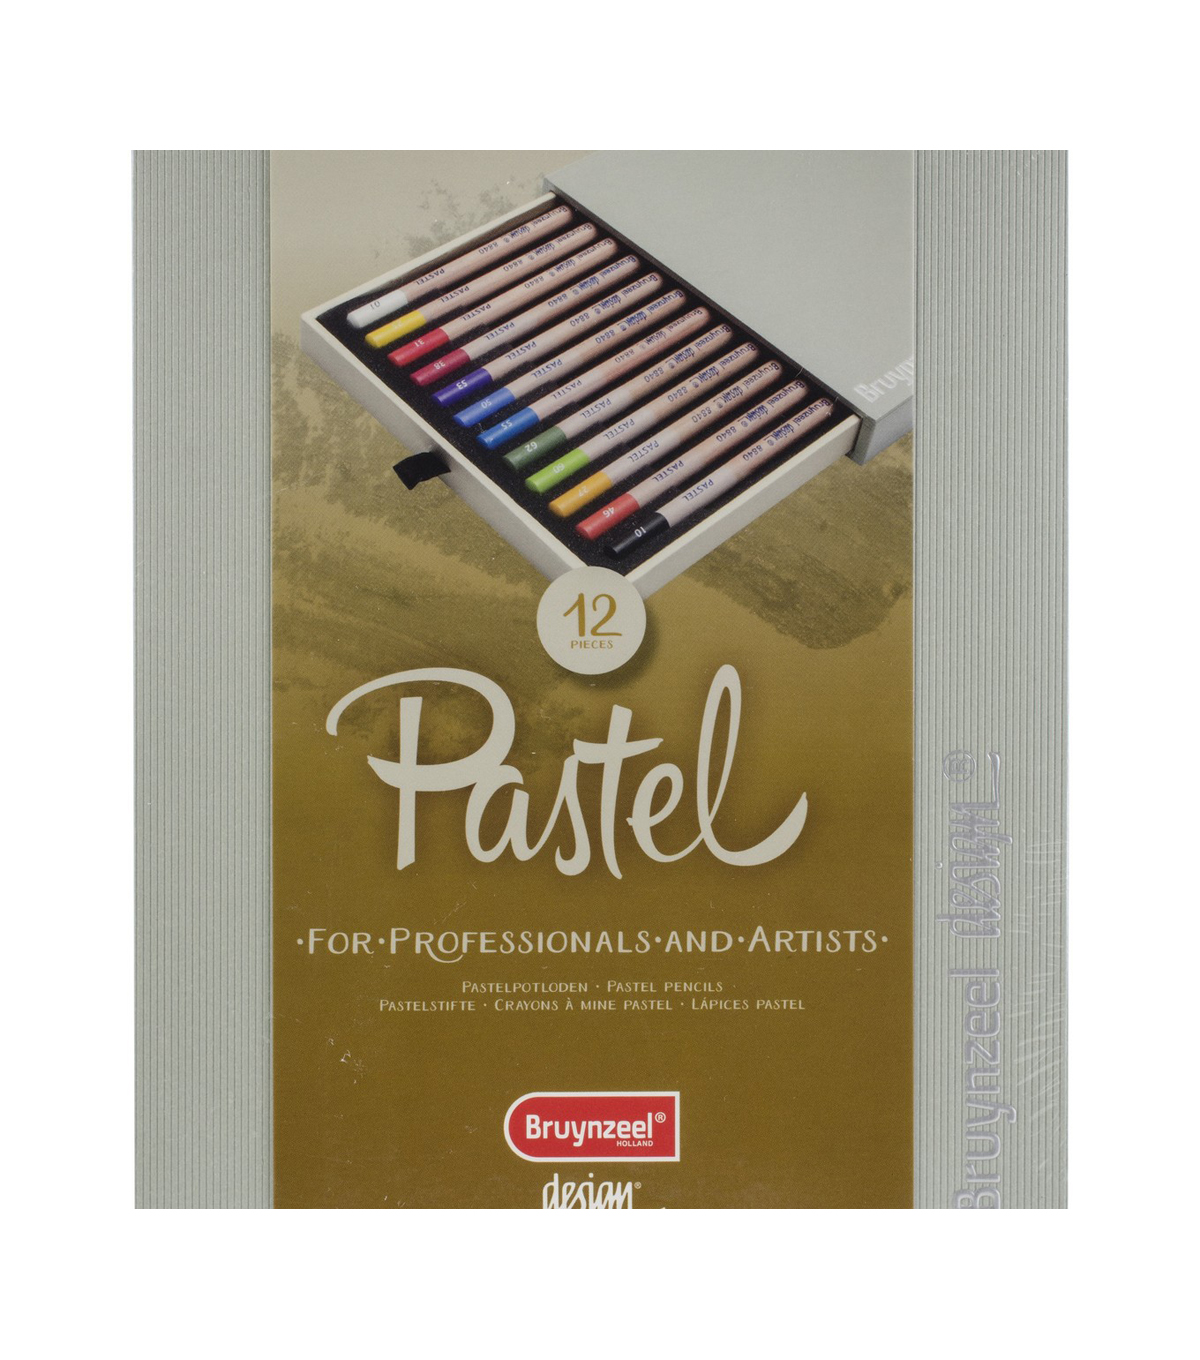 Bruynzeel Design 12 pk Pastel Pencils